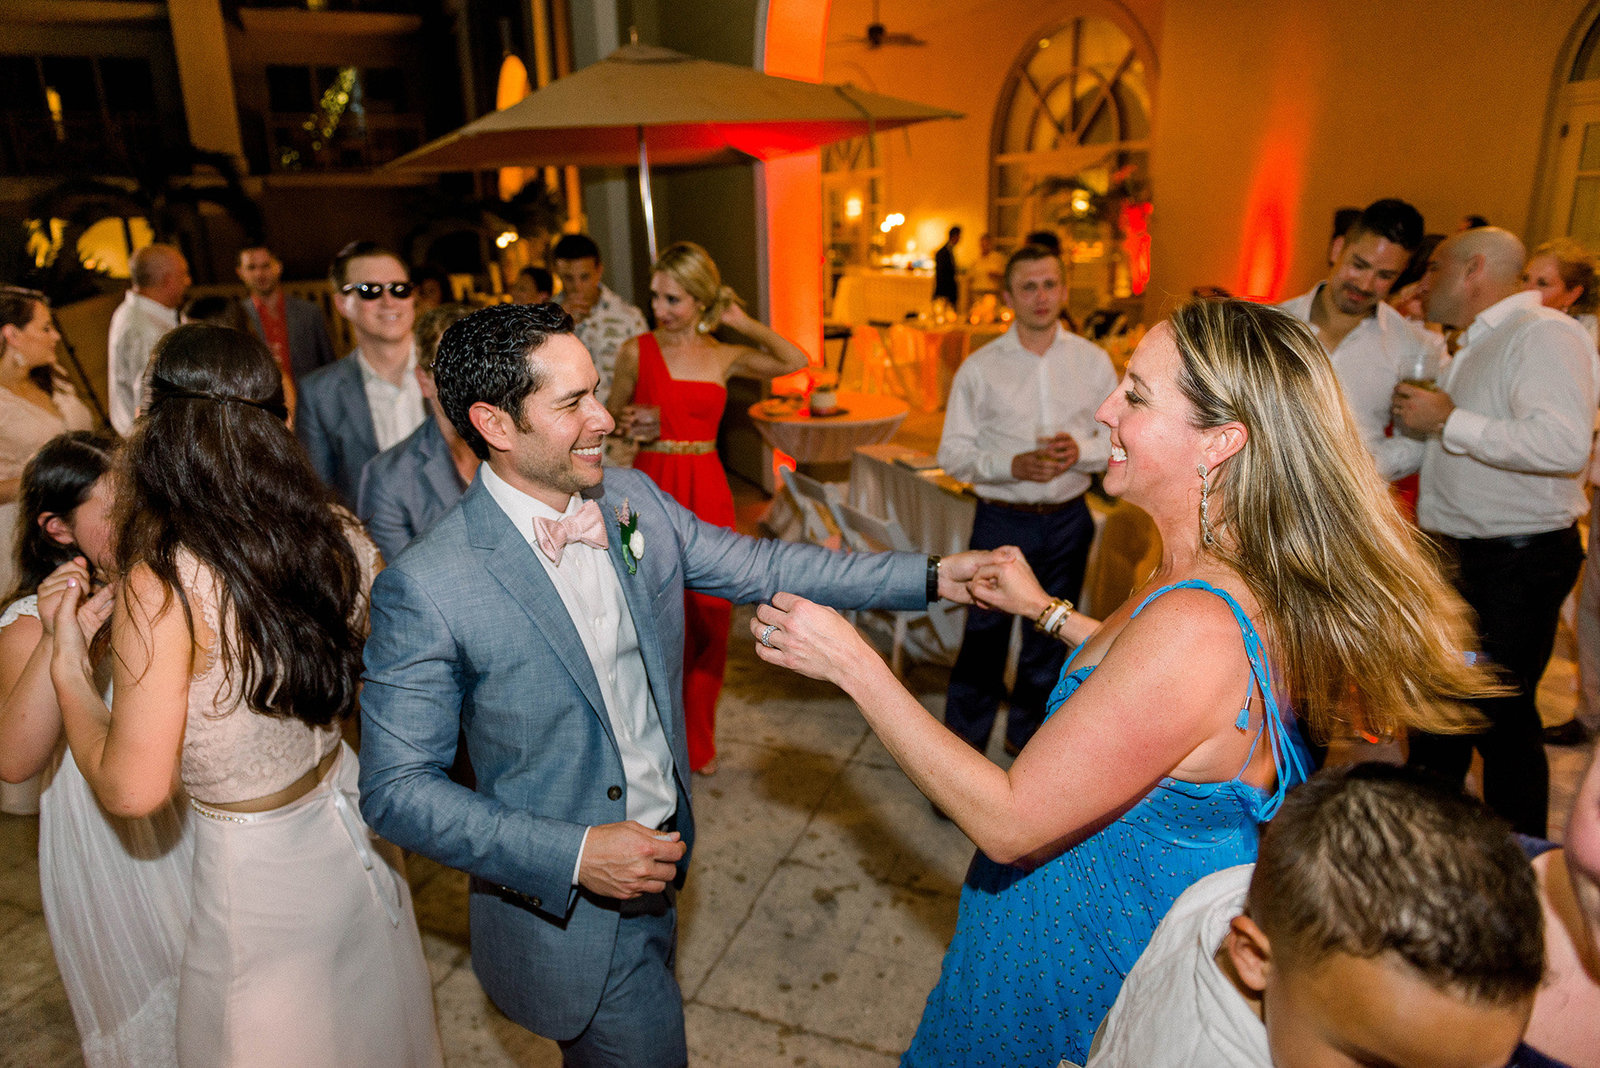 20180512-Pura-Soul-Photo-Ritz-Grand-Cayman-Wedding-143